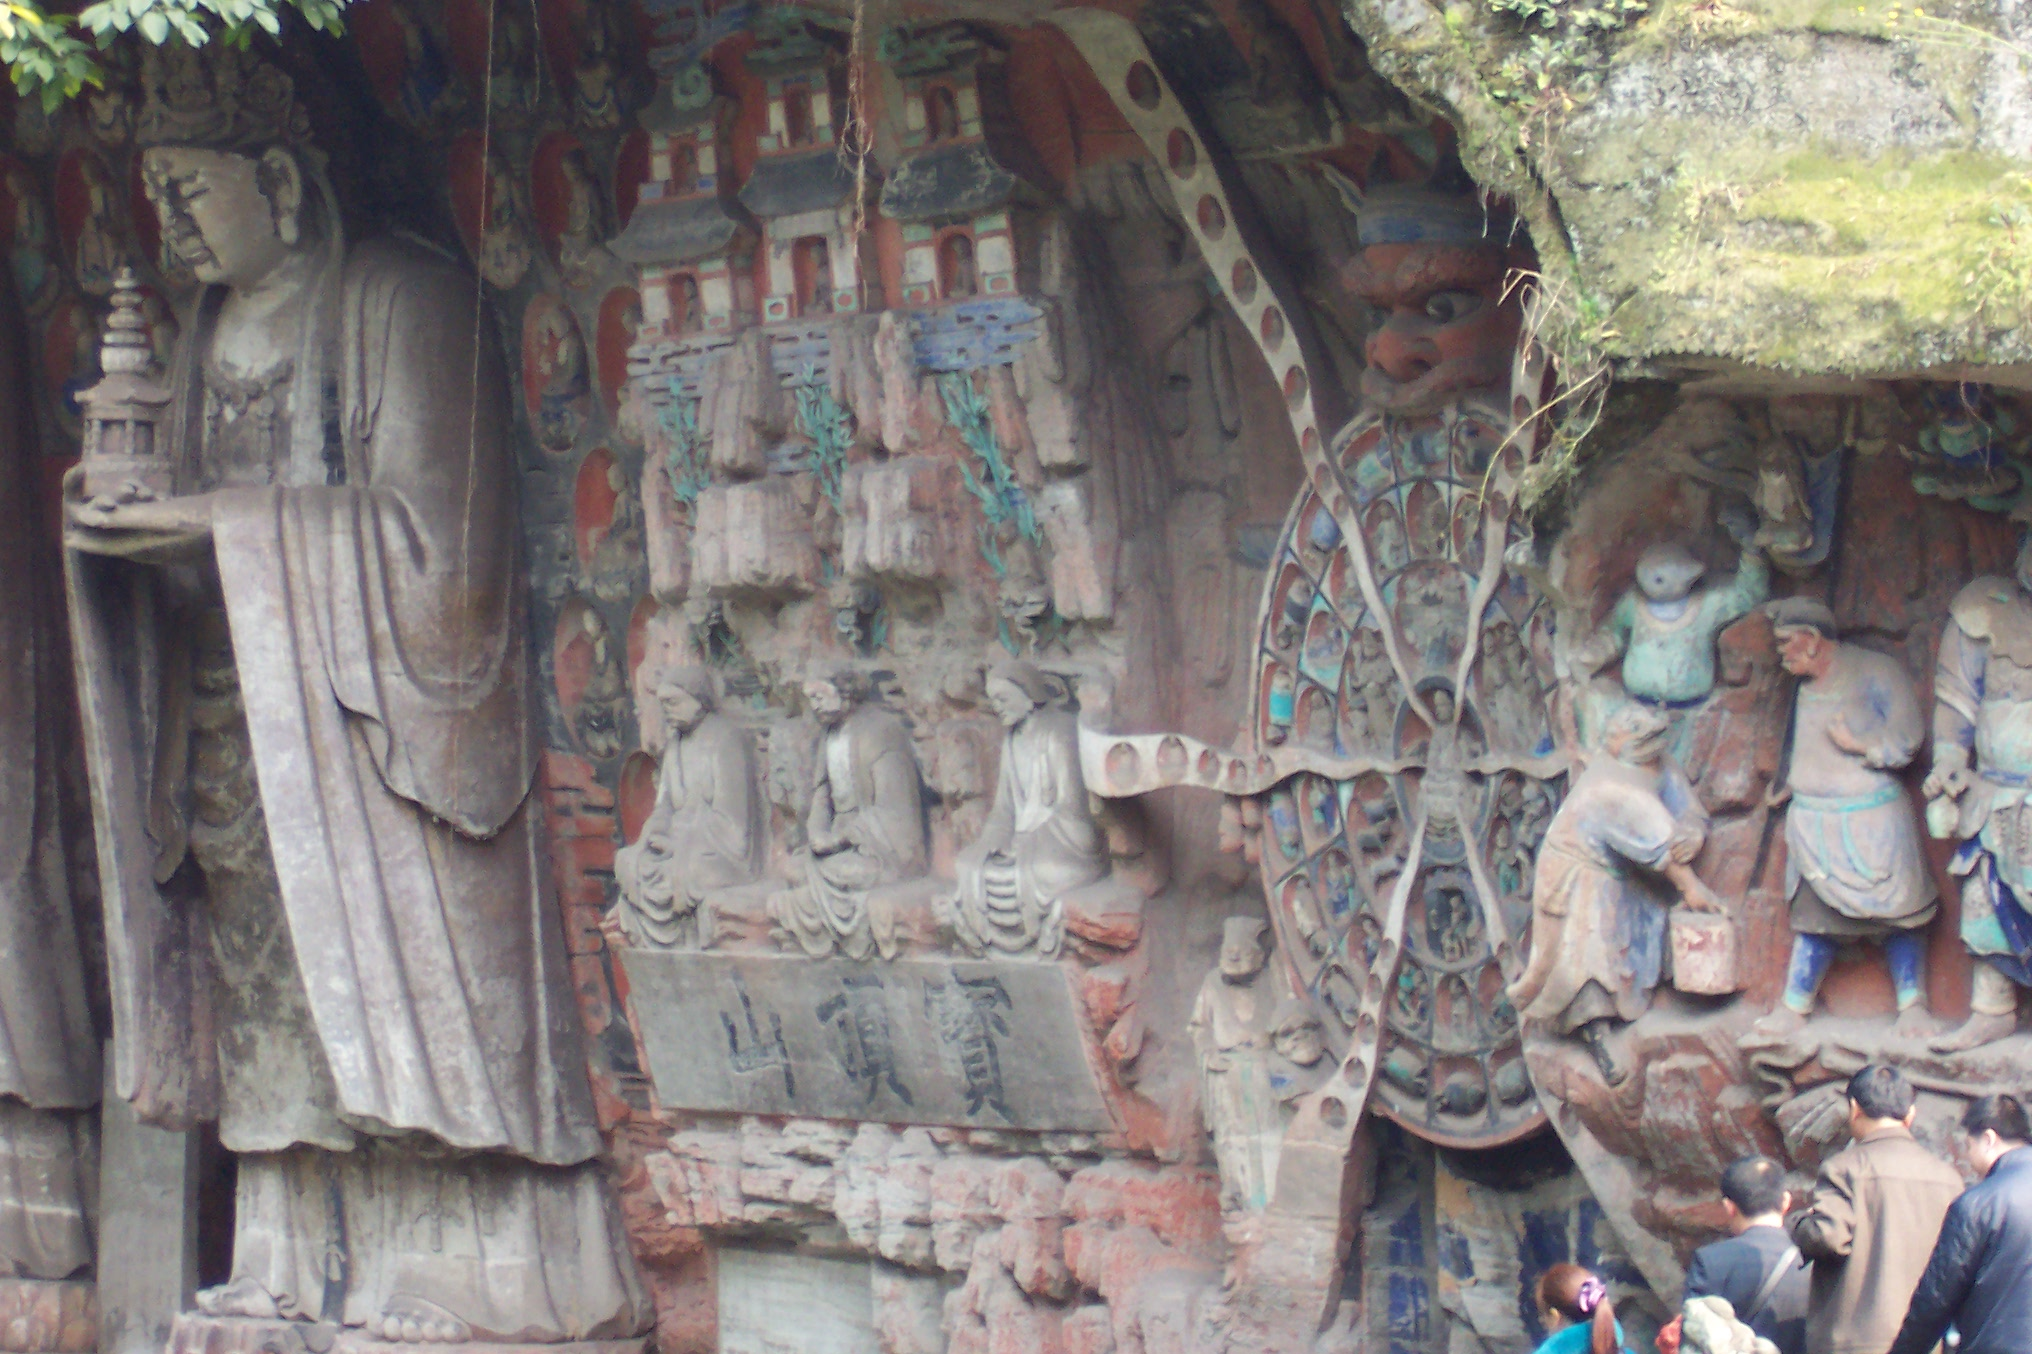 http://upload.wikimedia.org/wikipedia/commons/5/5d/Dazu_rock_carvings_1.JPG